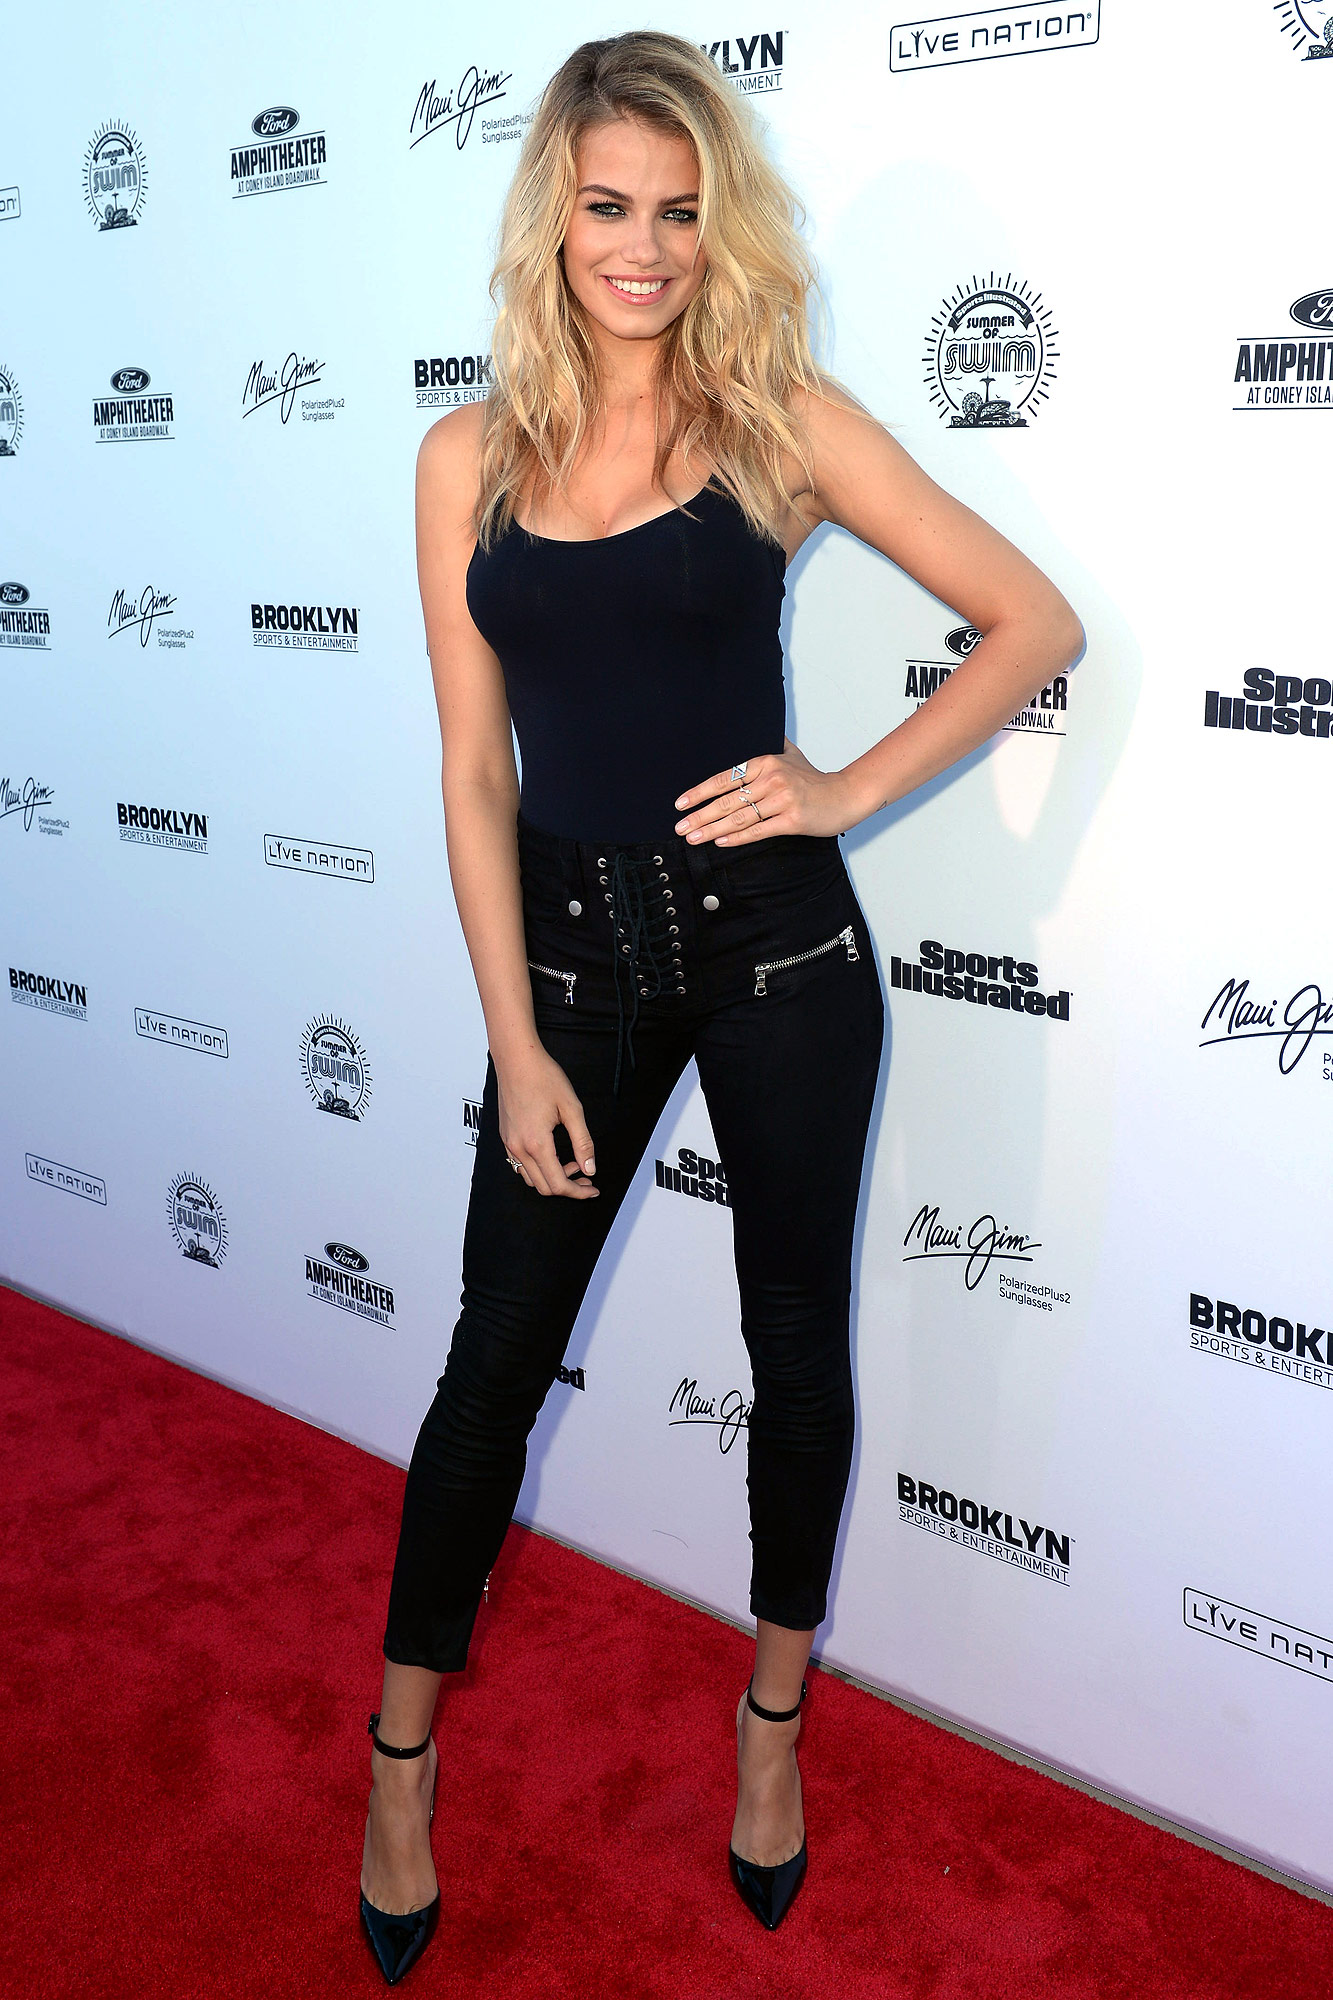 Hailey Clauson attends Sports Illustrated Swimsuit Summer of Swim Fan Festival and Concert at Coney Island Beach and Boardwalk on August 28, 2016 in Brooklyn, New York.